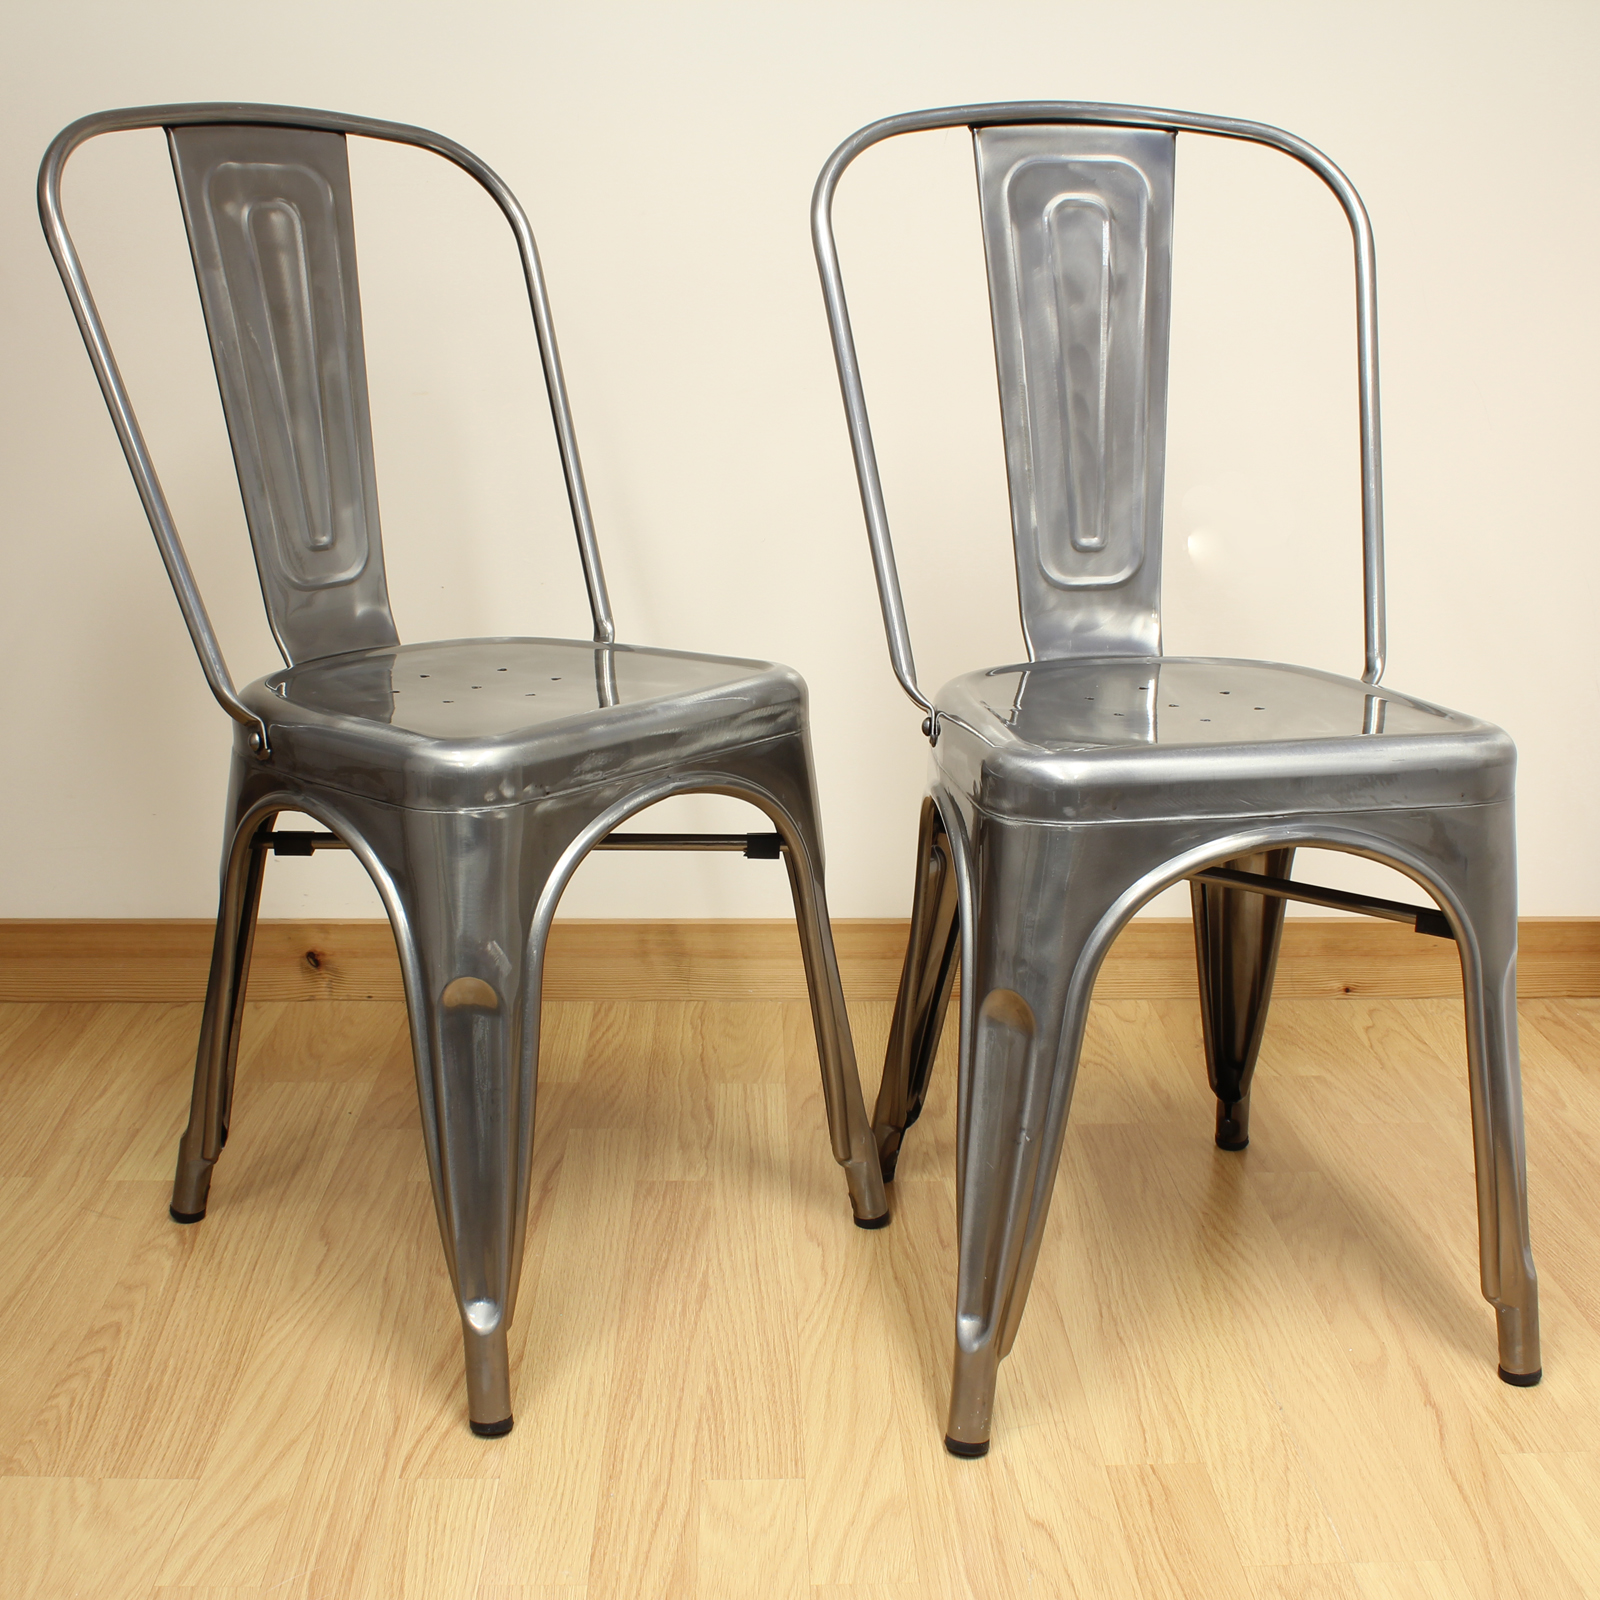 Metal Dining Chairs Industrial Set Of 2 Gunmetal Metal Industrial Dining Chair Kitchen